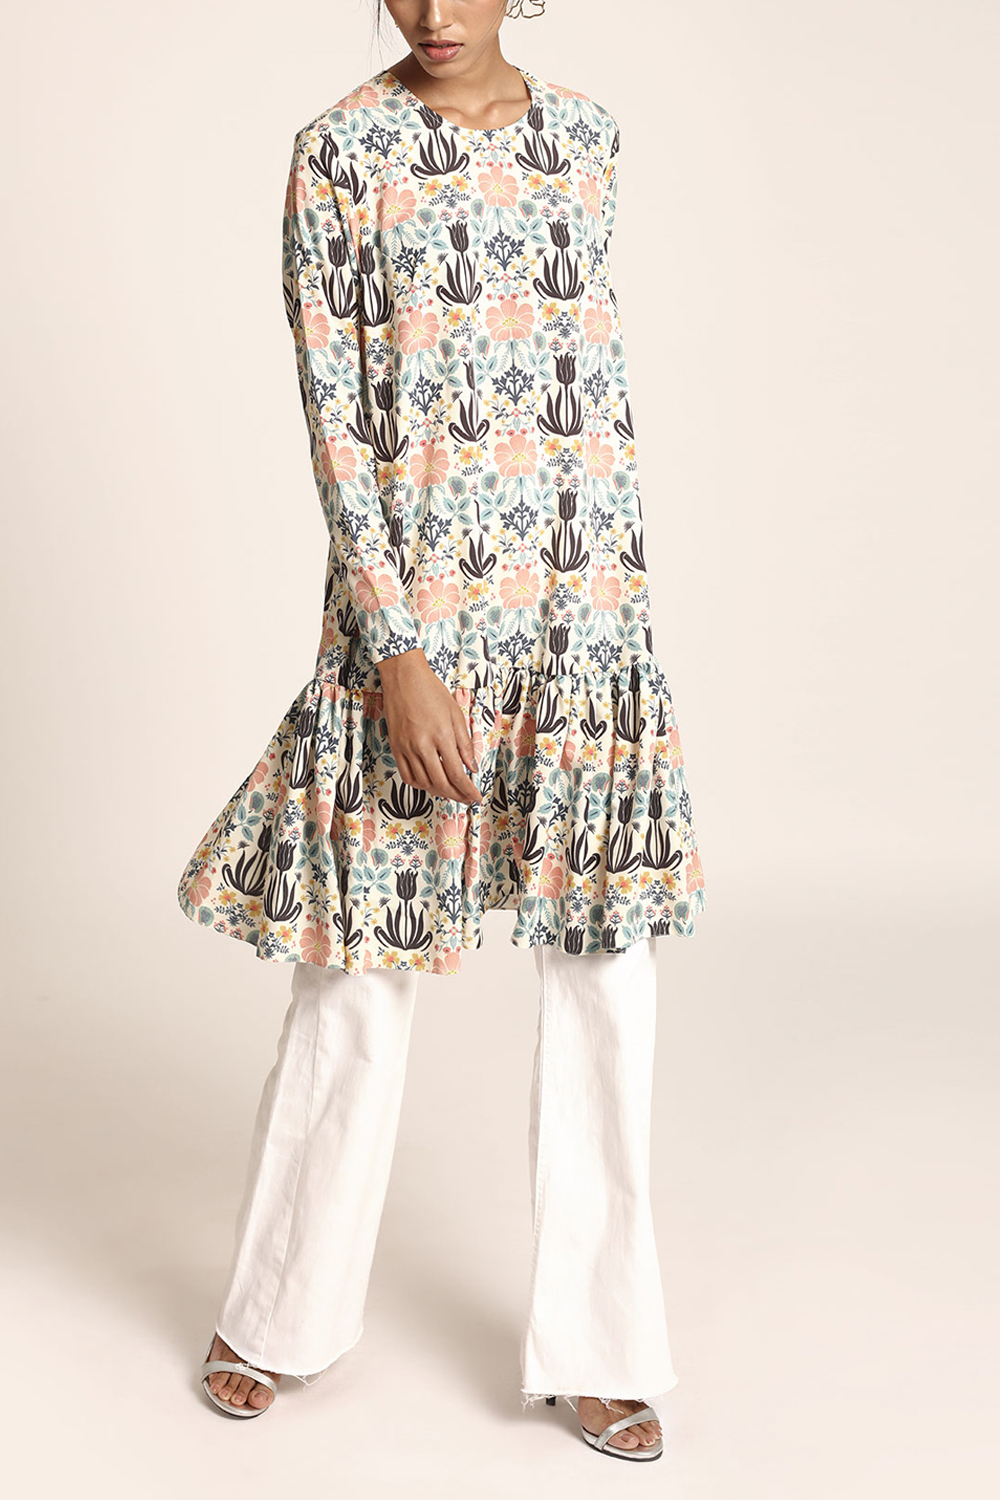 PS by Payal Singhal